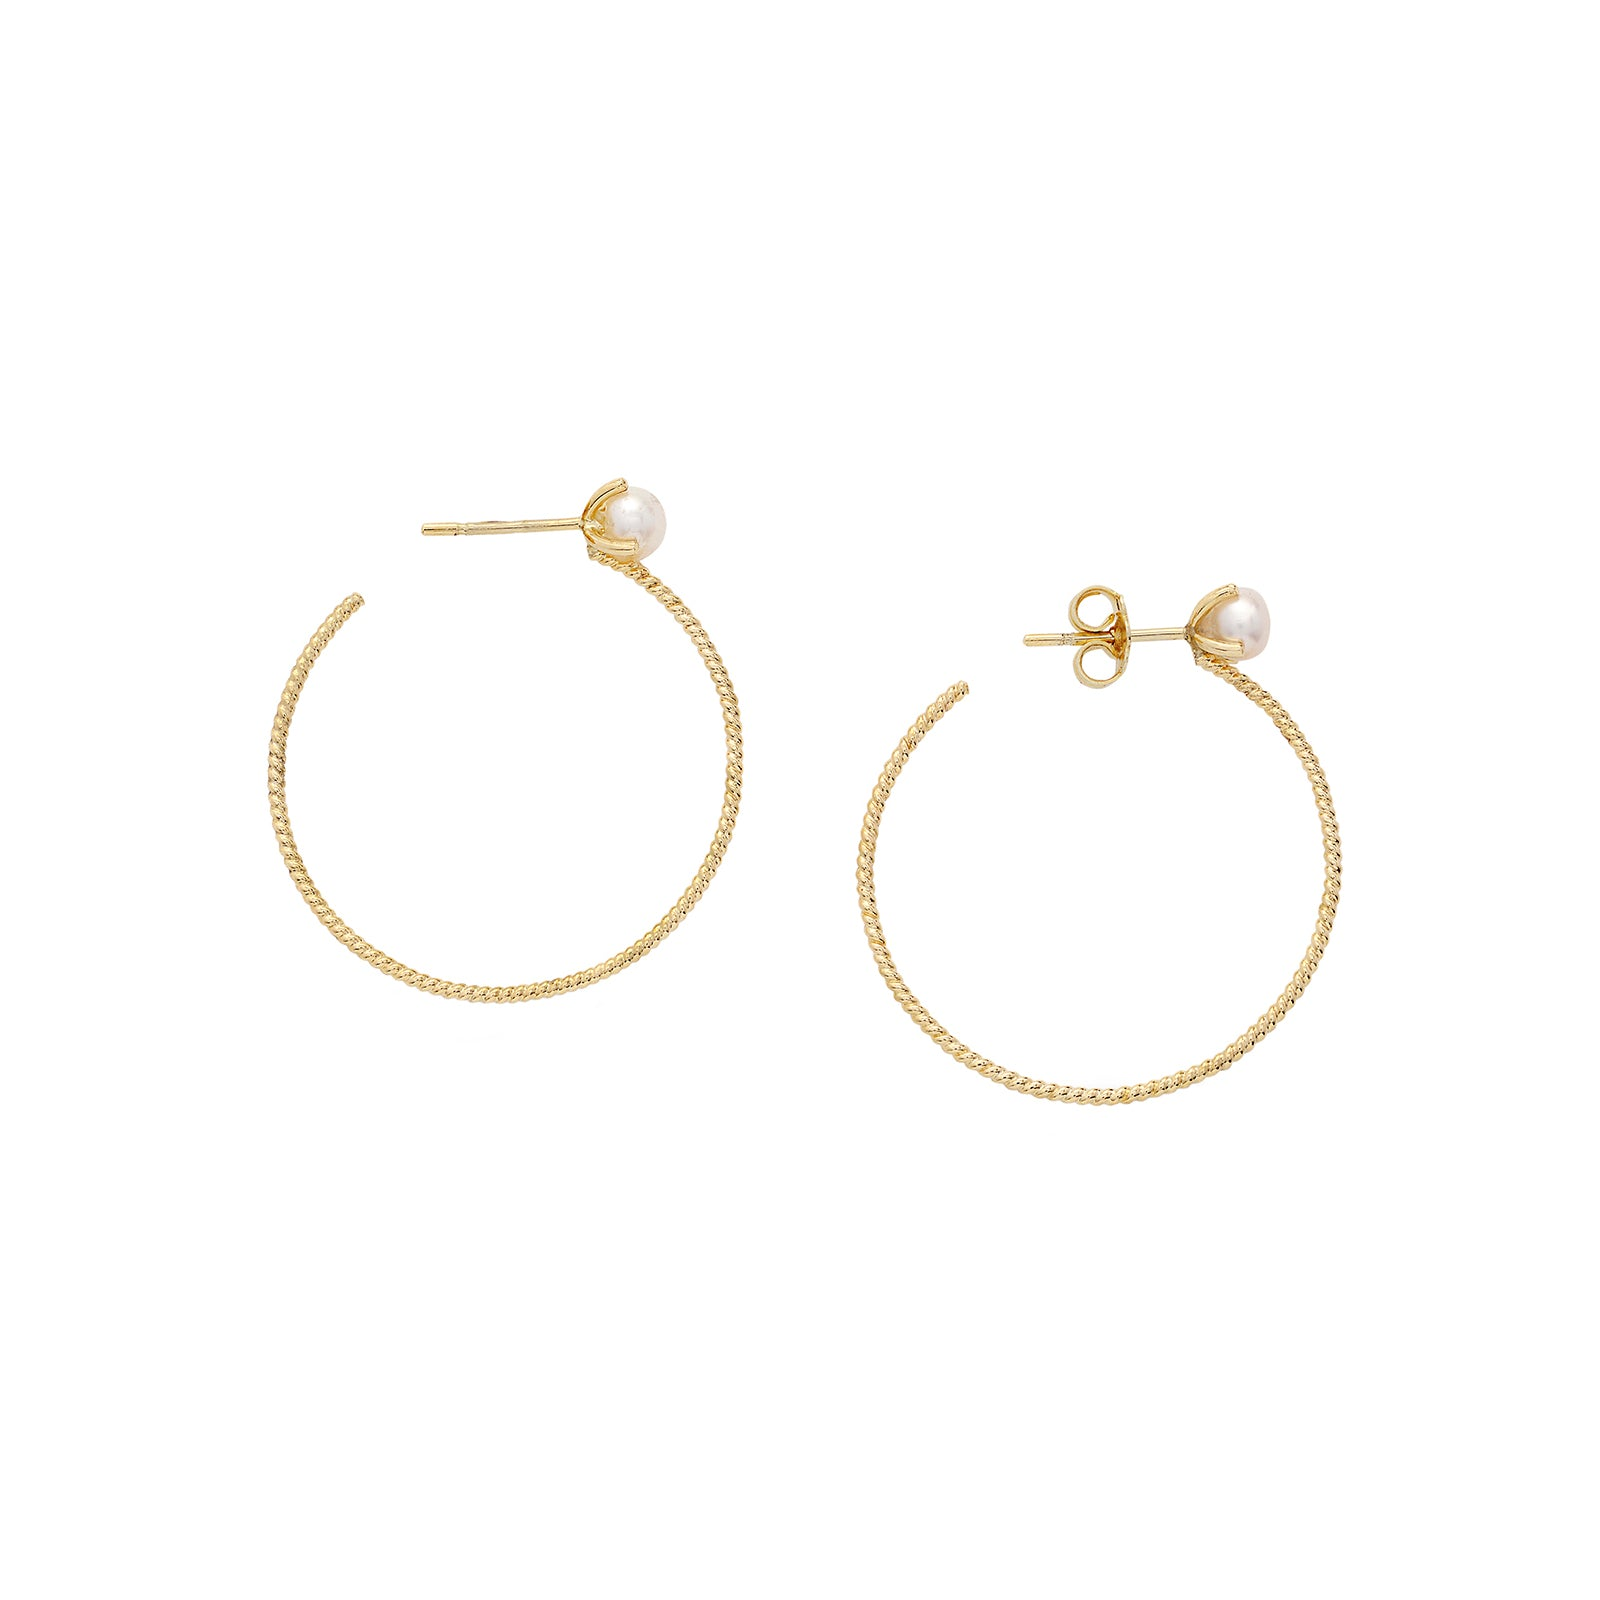 Small Pearl Filigree Hoops - Penelope - Earrings | Broken English Jewelry